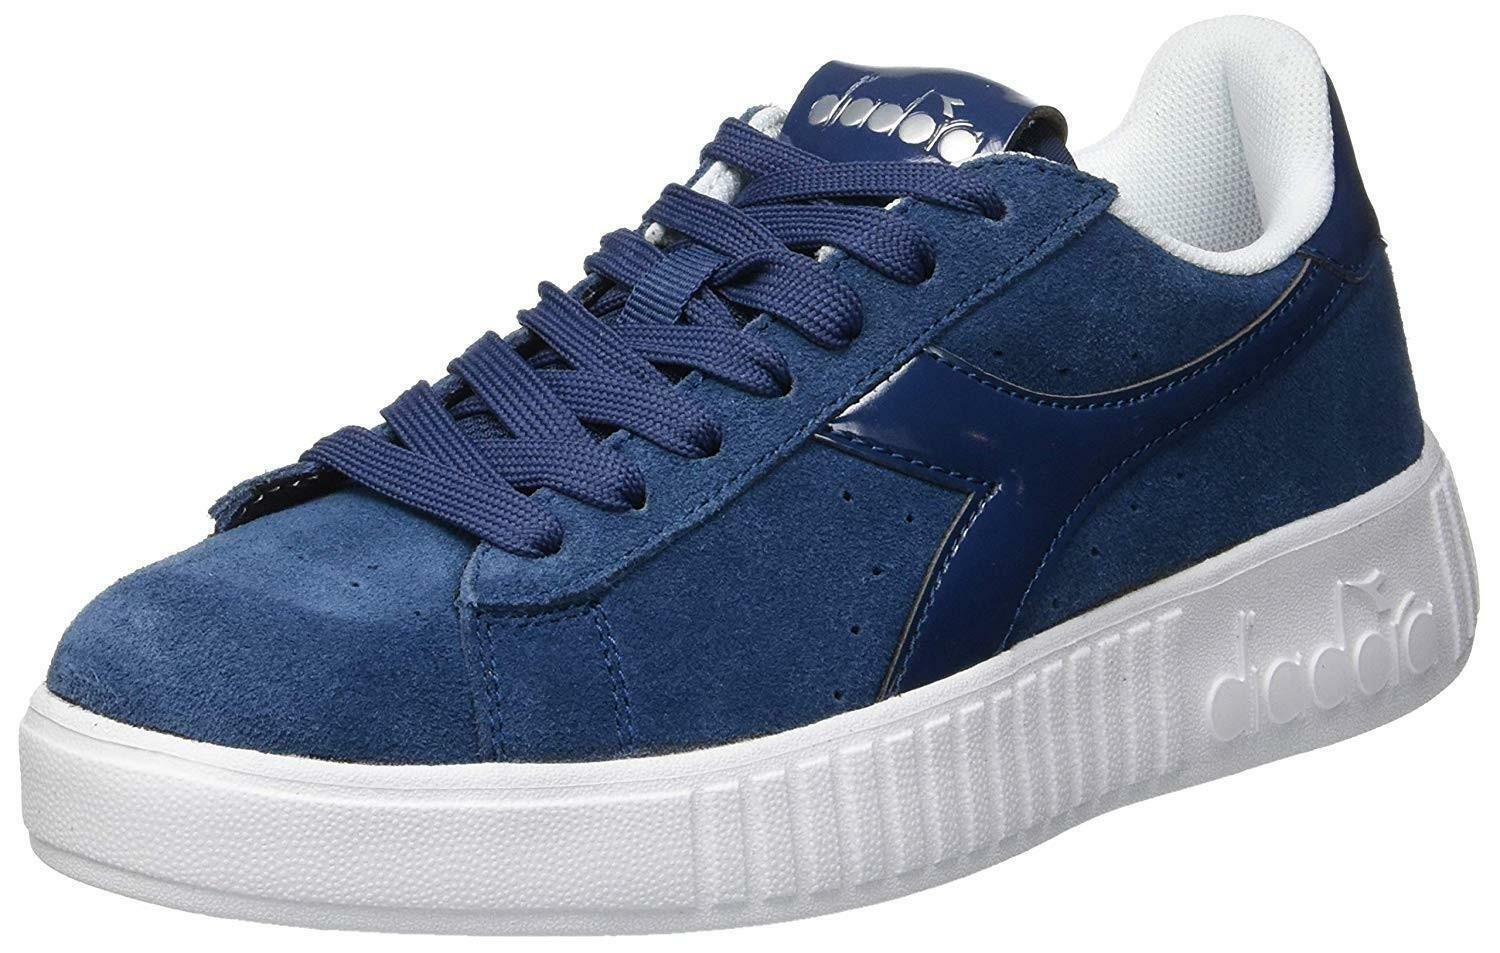 official photos 81e62 33945 Diadora game step scarpe sportive donna blu 17375260033